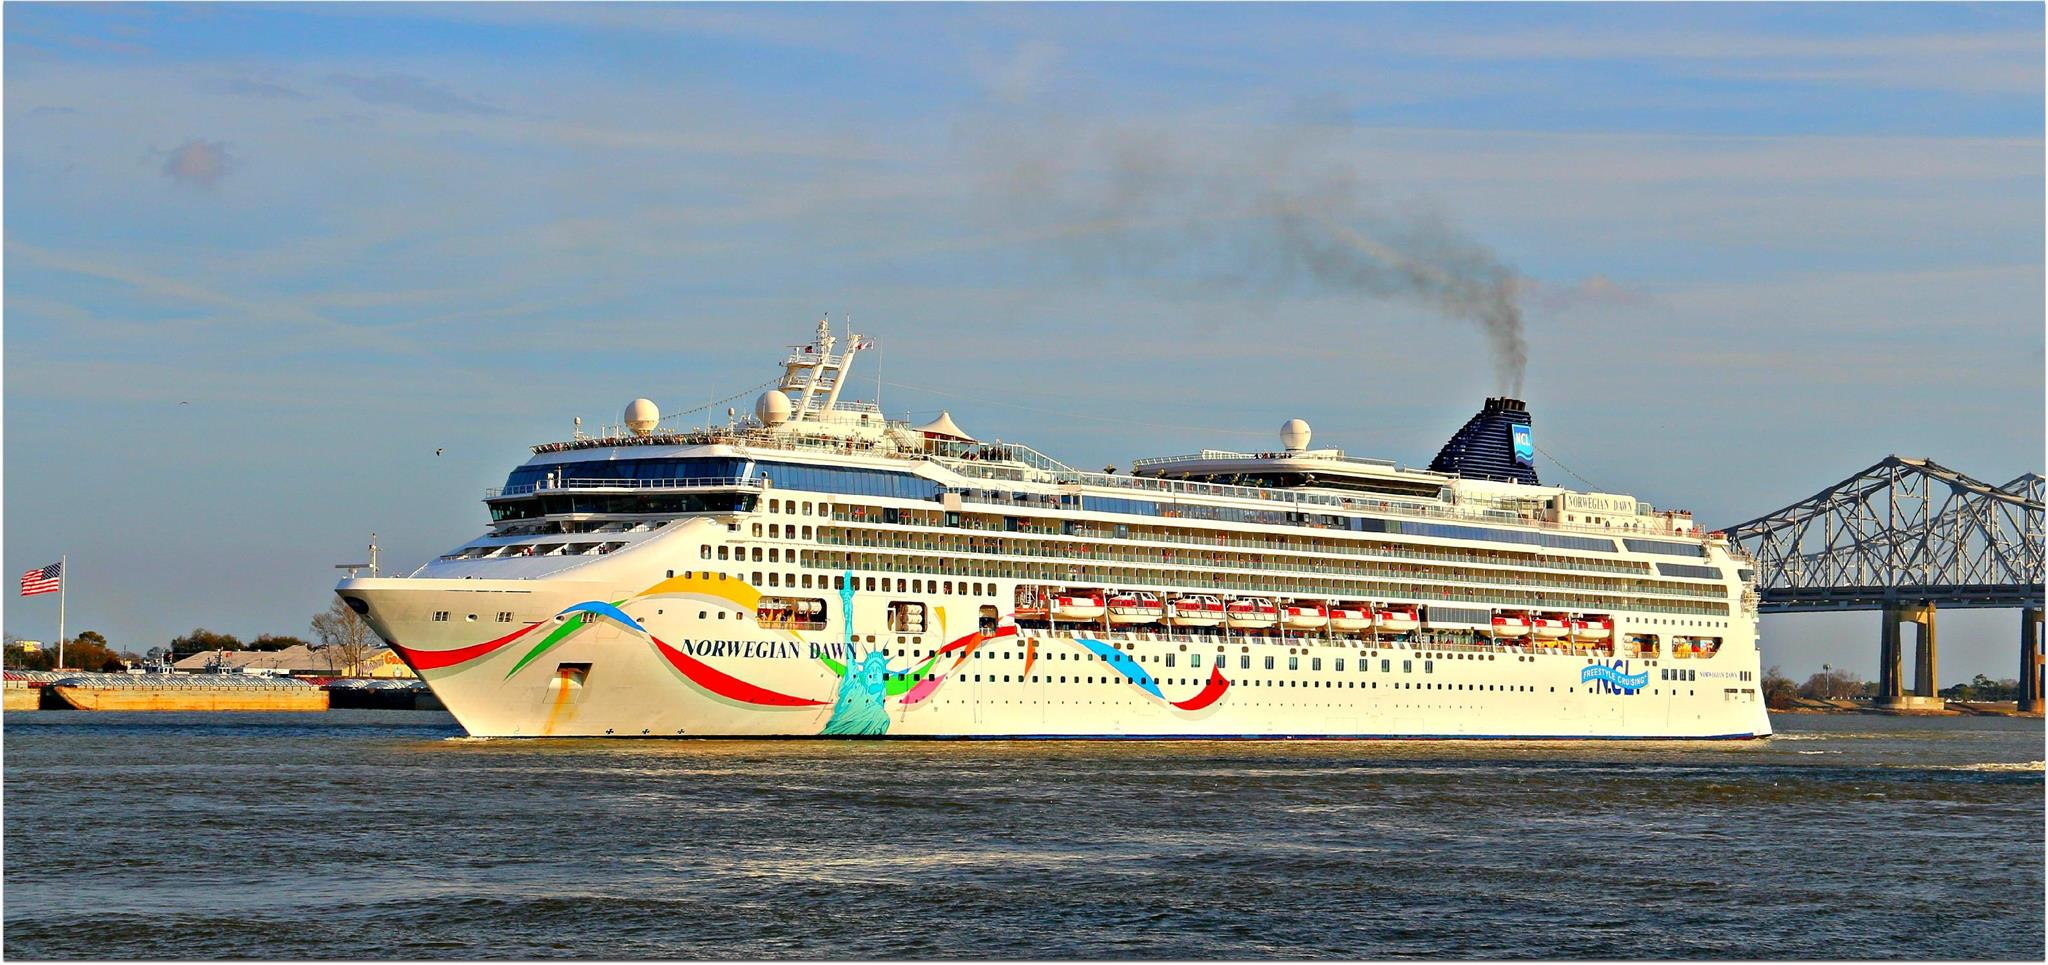 ColorfulCruiseShip.jpg